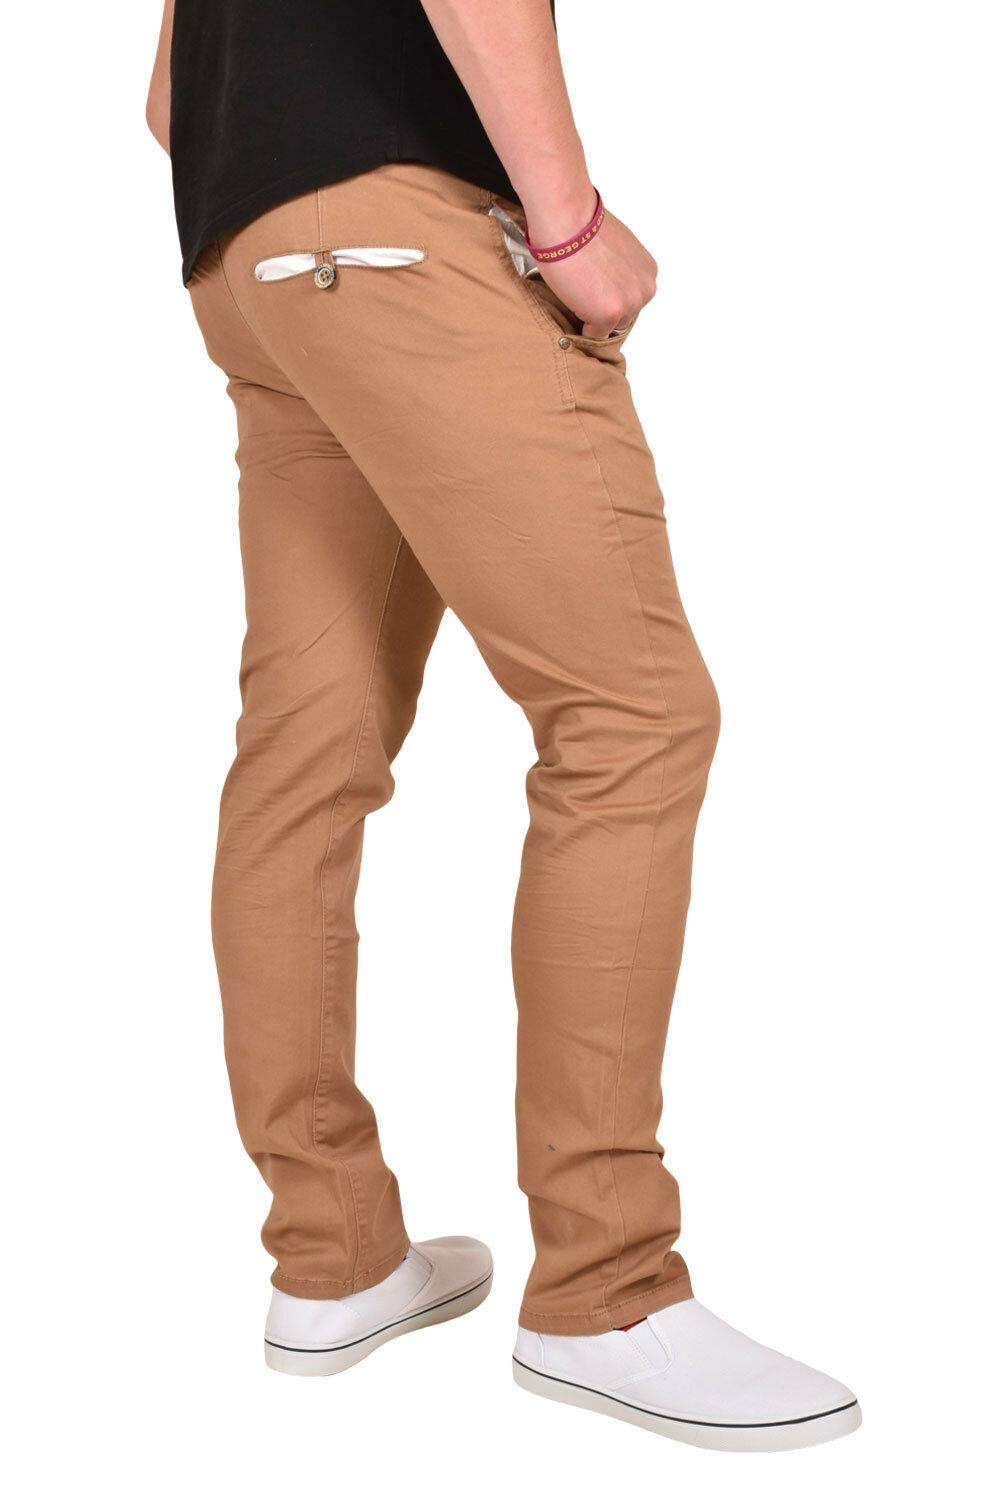 New-Mens-Designer-Jacksouth-Chino-Regular-Fit-Stretch-Cotton-Rich-Twill-Trousers thumbnail 38